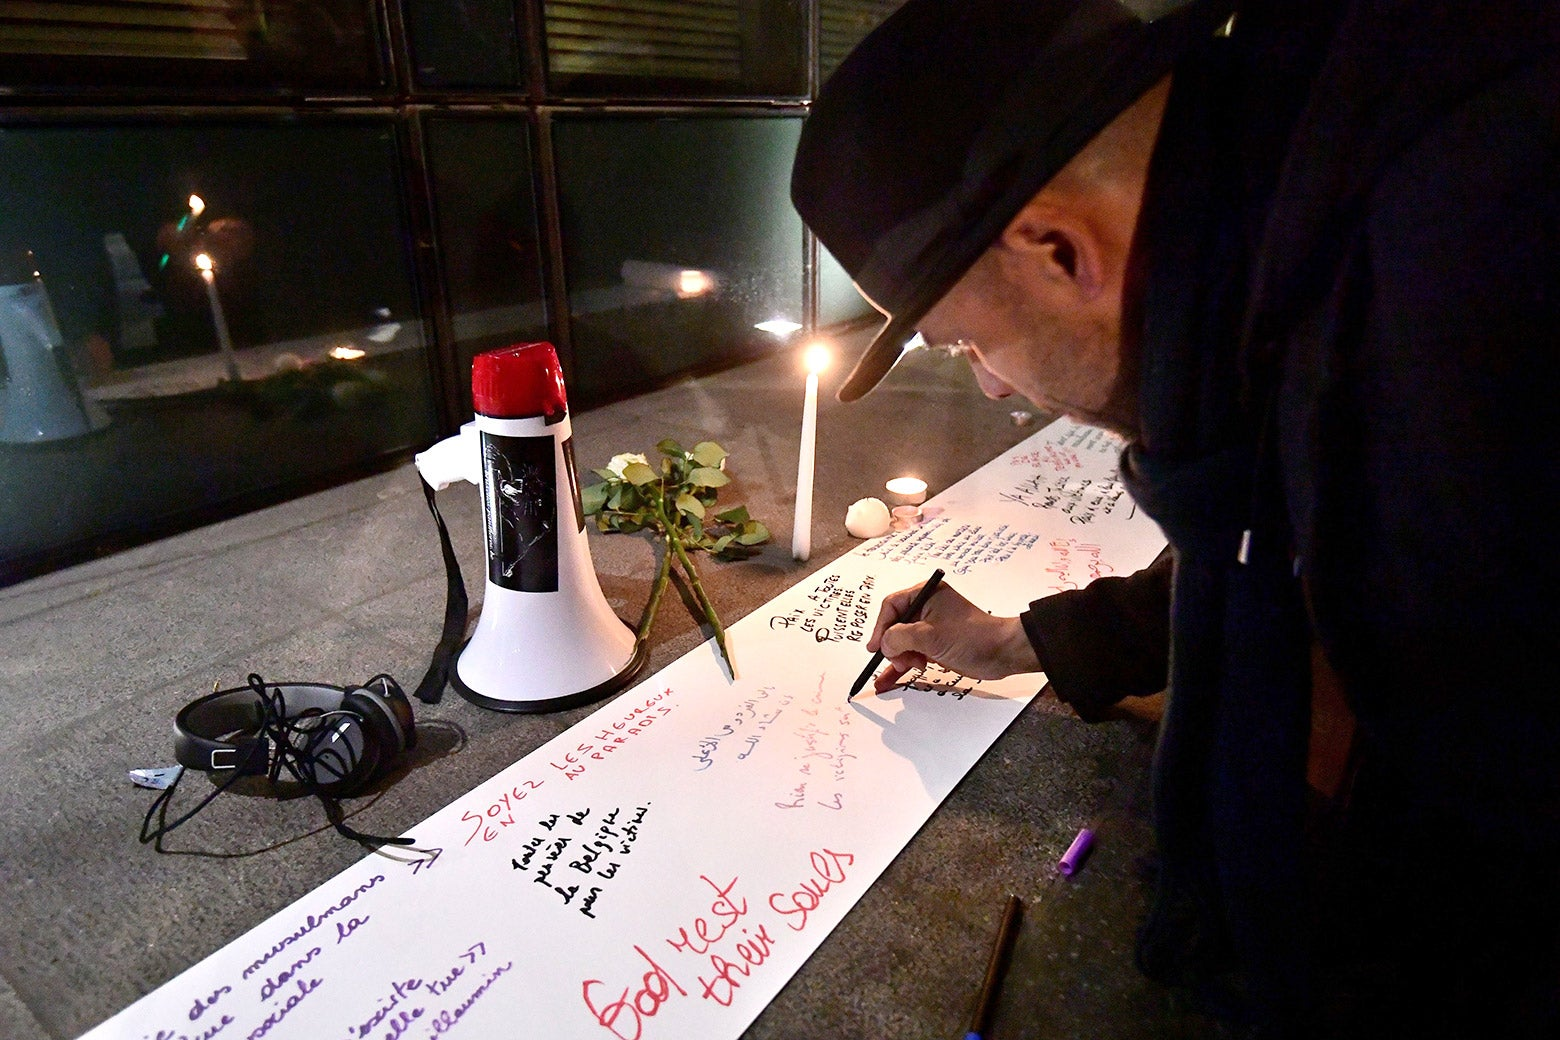 A man writes on a white sheet. There are candles.